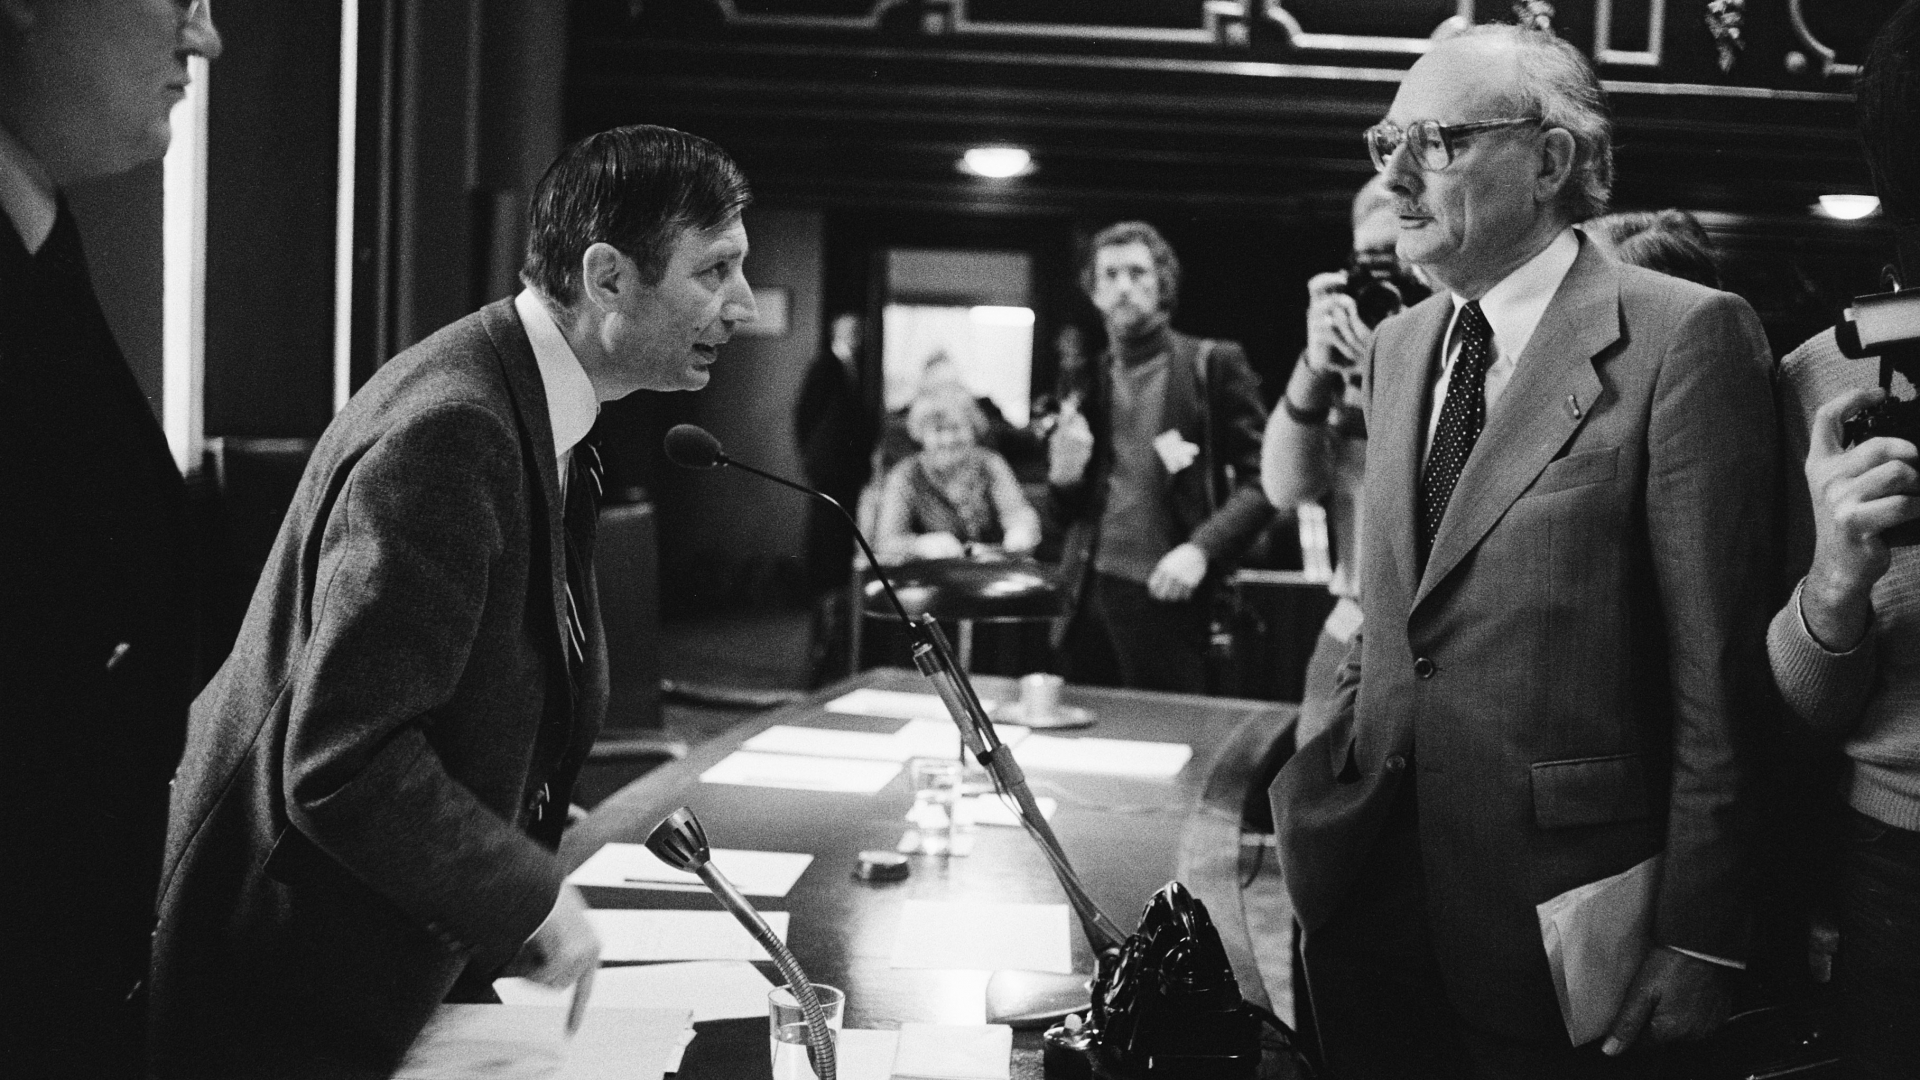 President of the Chamber Johan Van Hulst on the right. (Credit: Koen Suyk/National Archives of the Netherlands)